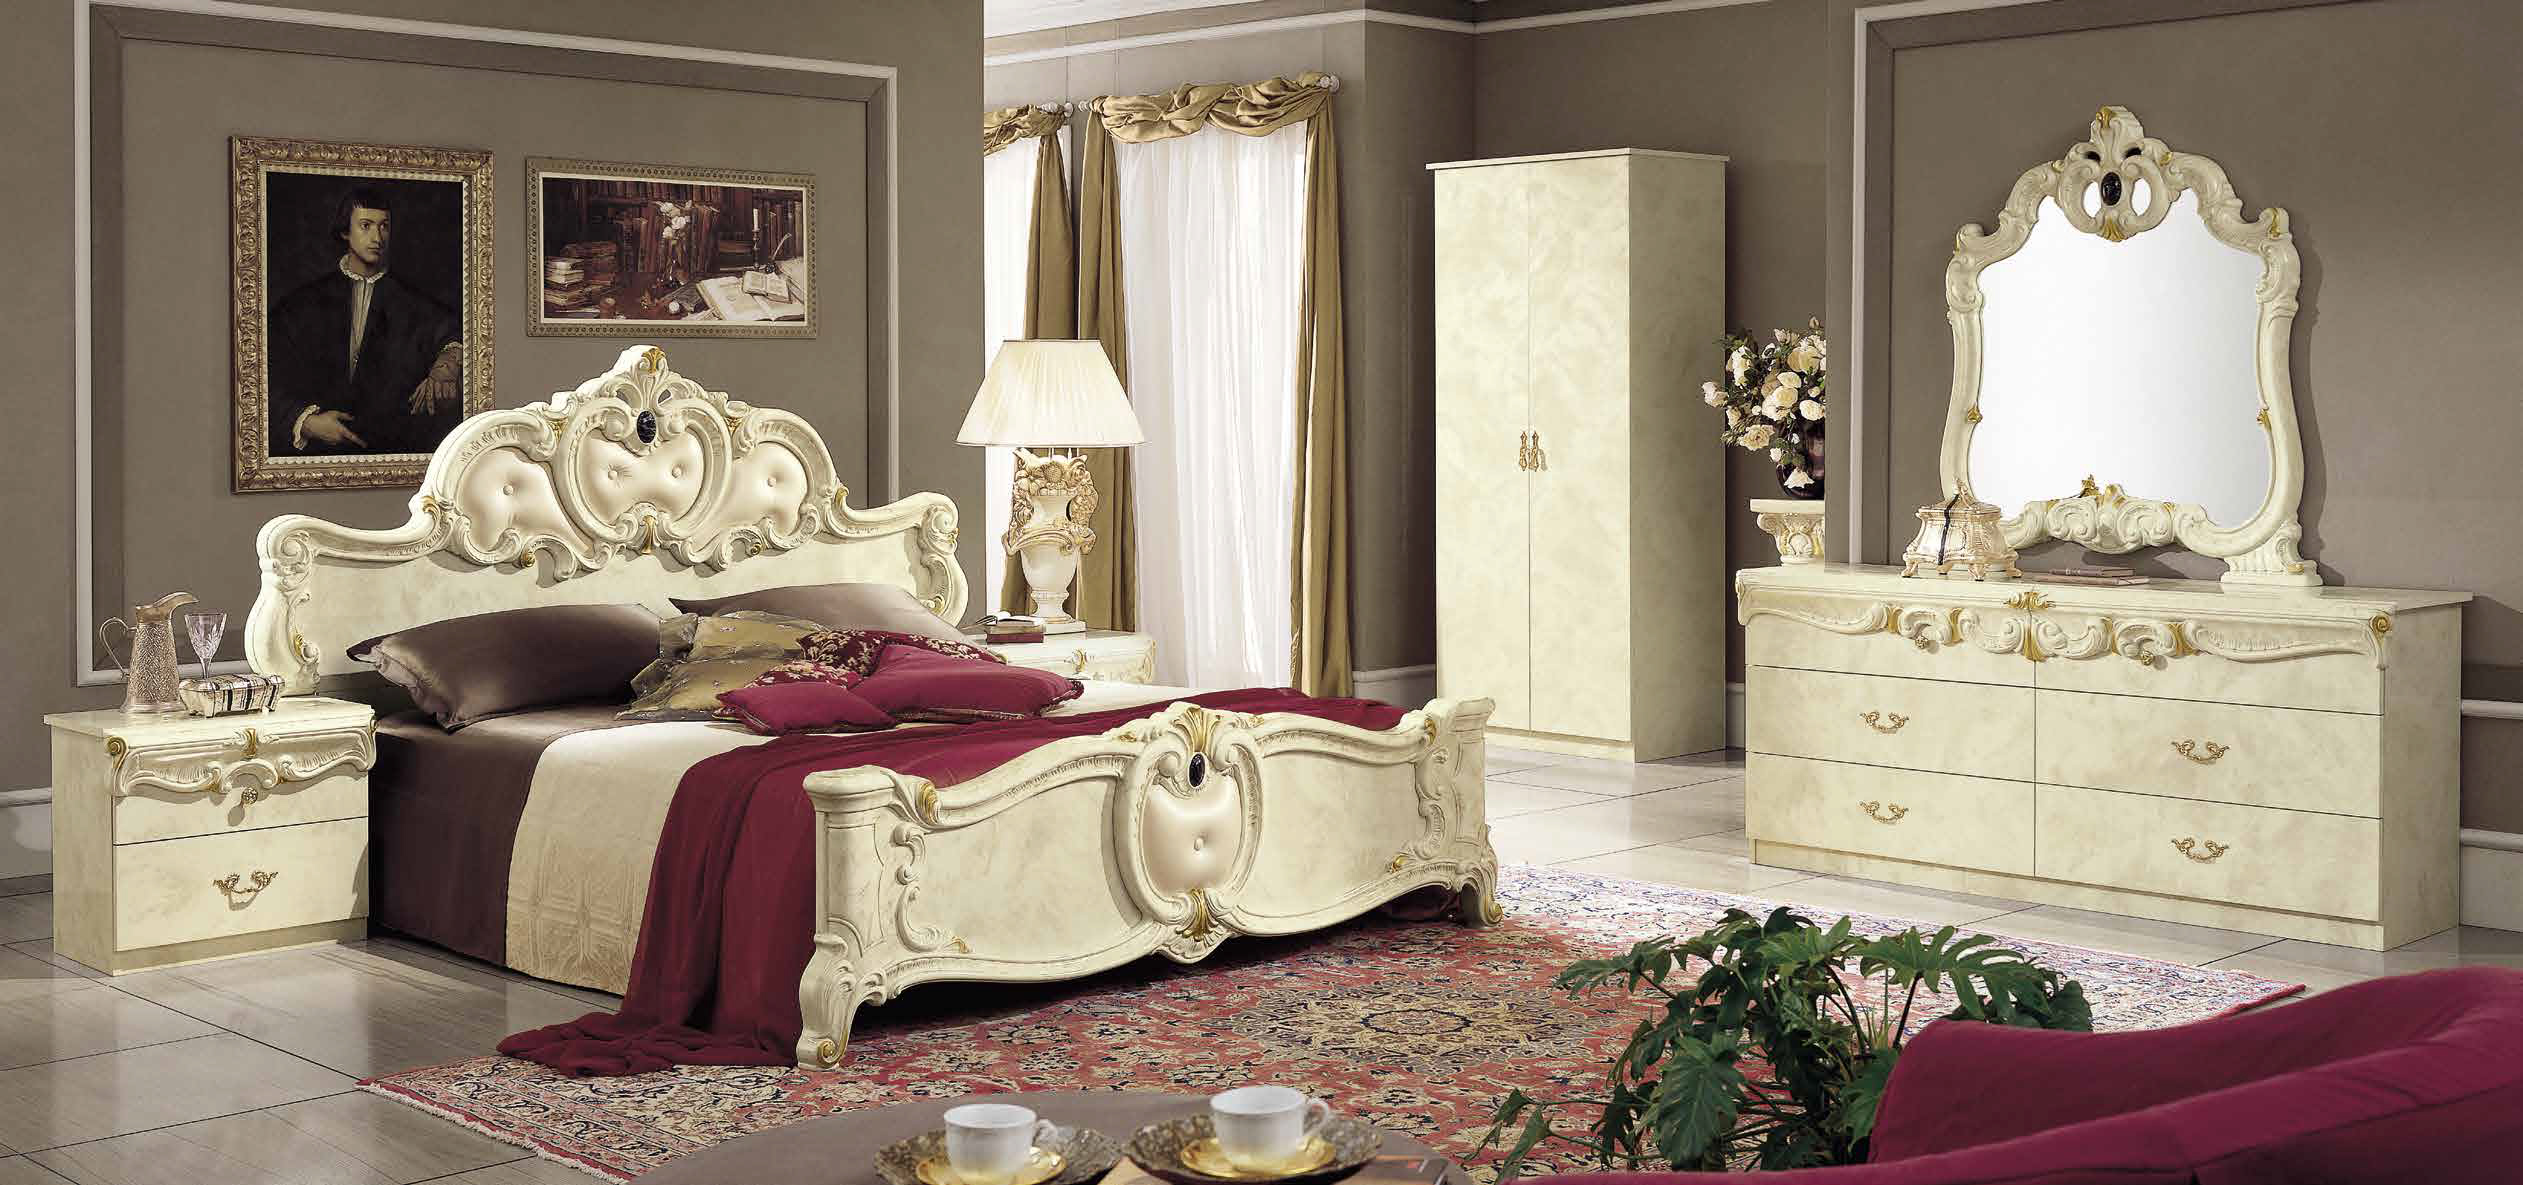 barocco ivory schlafzimmer yuvam m belhaus in wuppertal cilek offizieller h ndler in europa. Black Bedroom Furniture Sets. Home Design Ideas